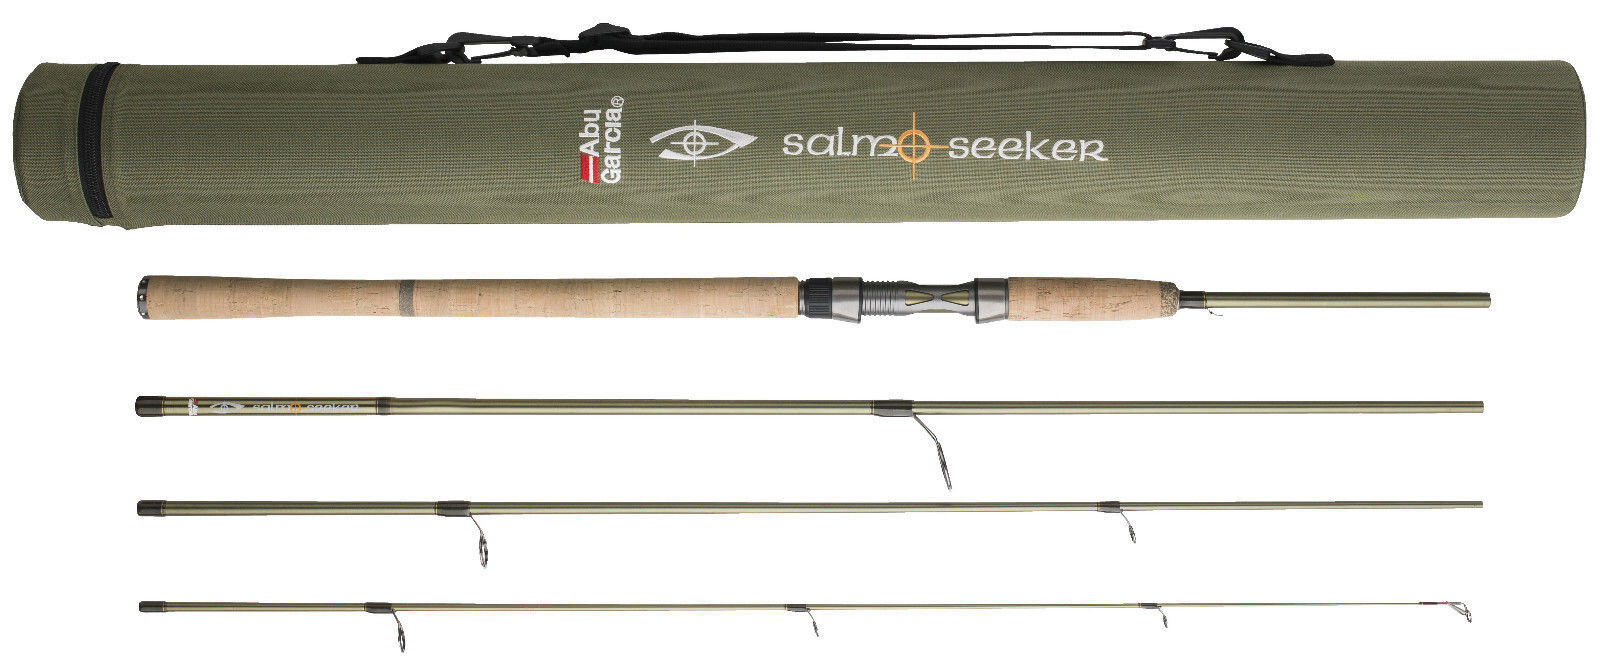 Abu Garcia Salmo  Seeker Spin 8ft, 9ft & 10ft 4 Piece Carbon Spinning Fishing Rod  in stadium promotions